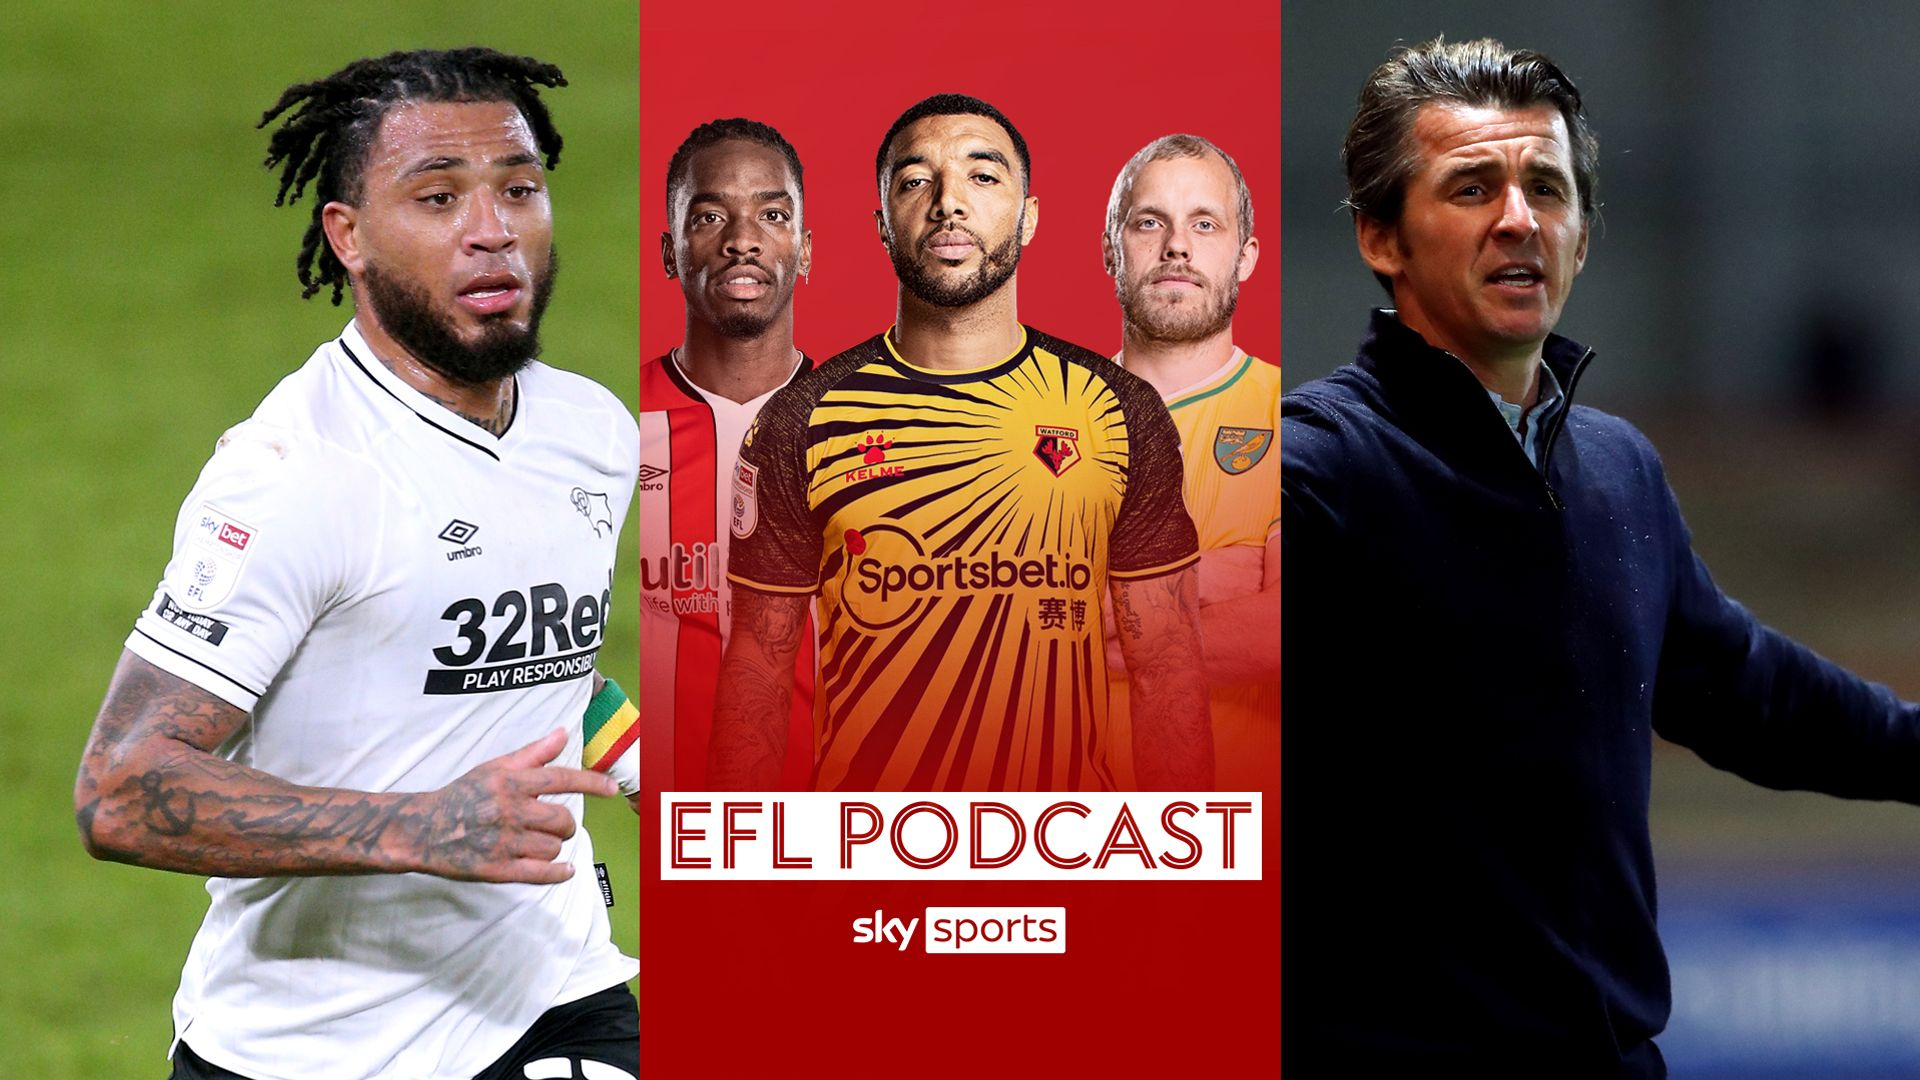 EFL Podcast: Cup upsets, Kazim-Richards & transfer latest